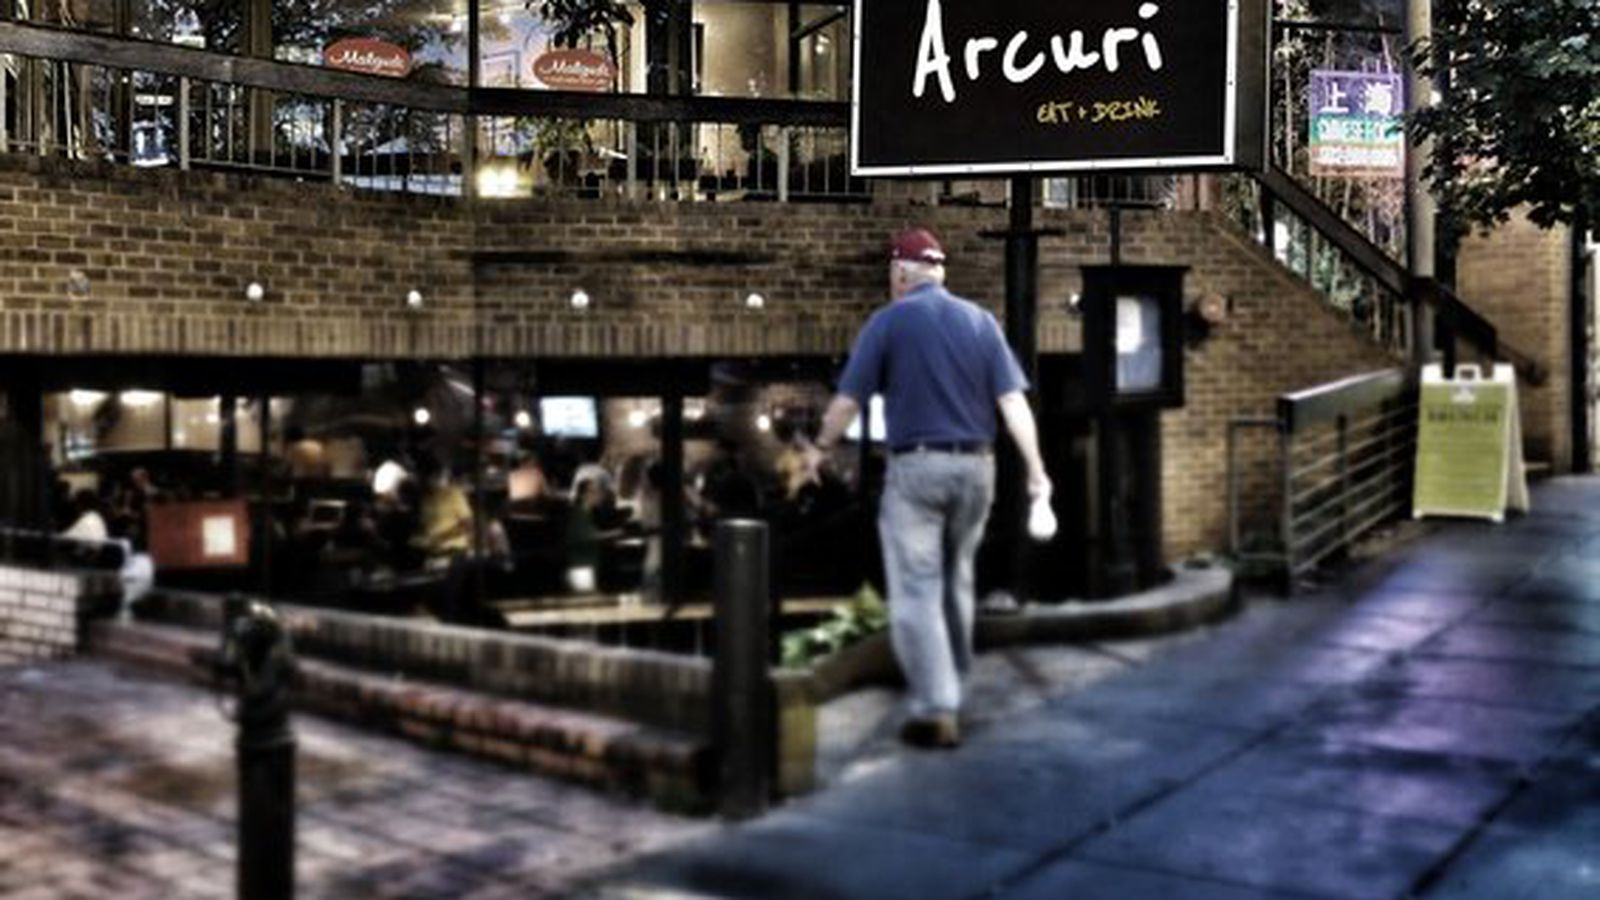 The Early Word on Arcuri, Glover Park's Latest Addition ...